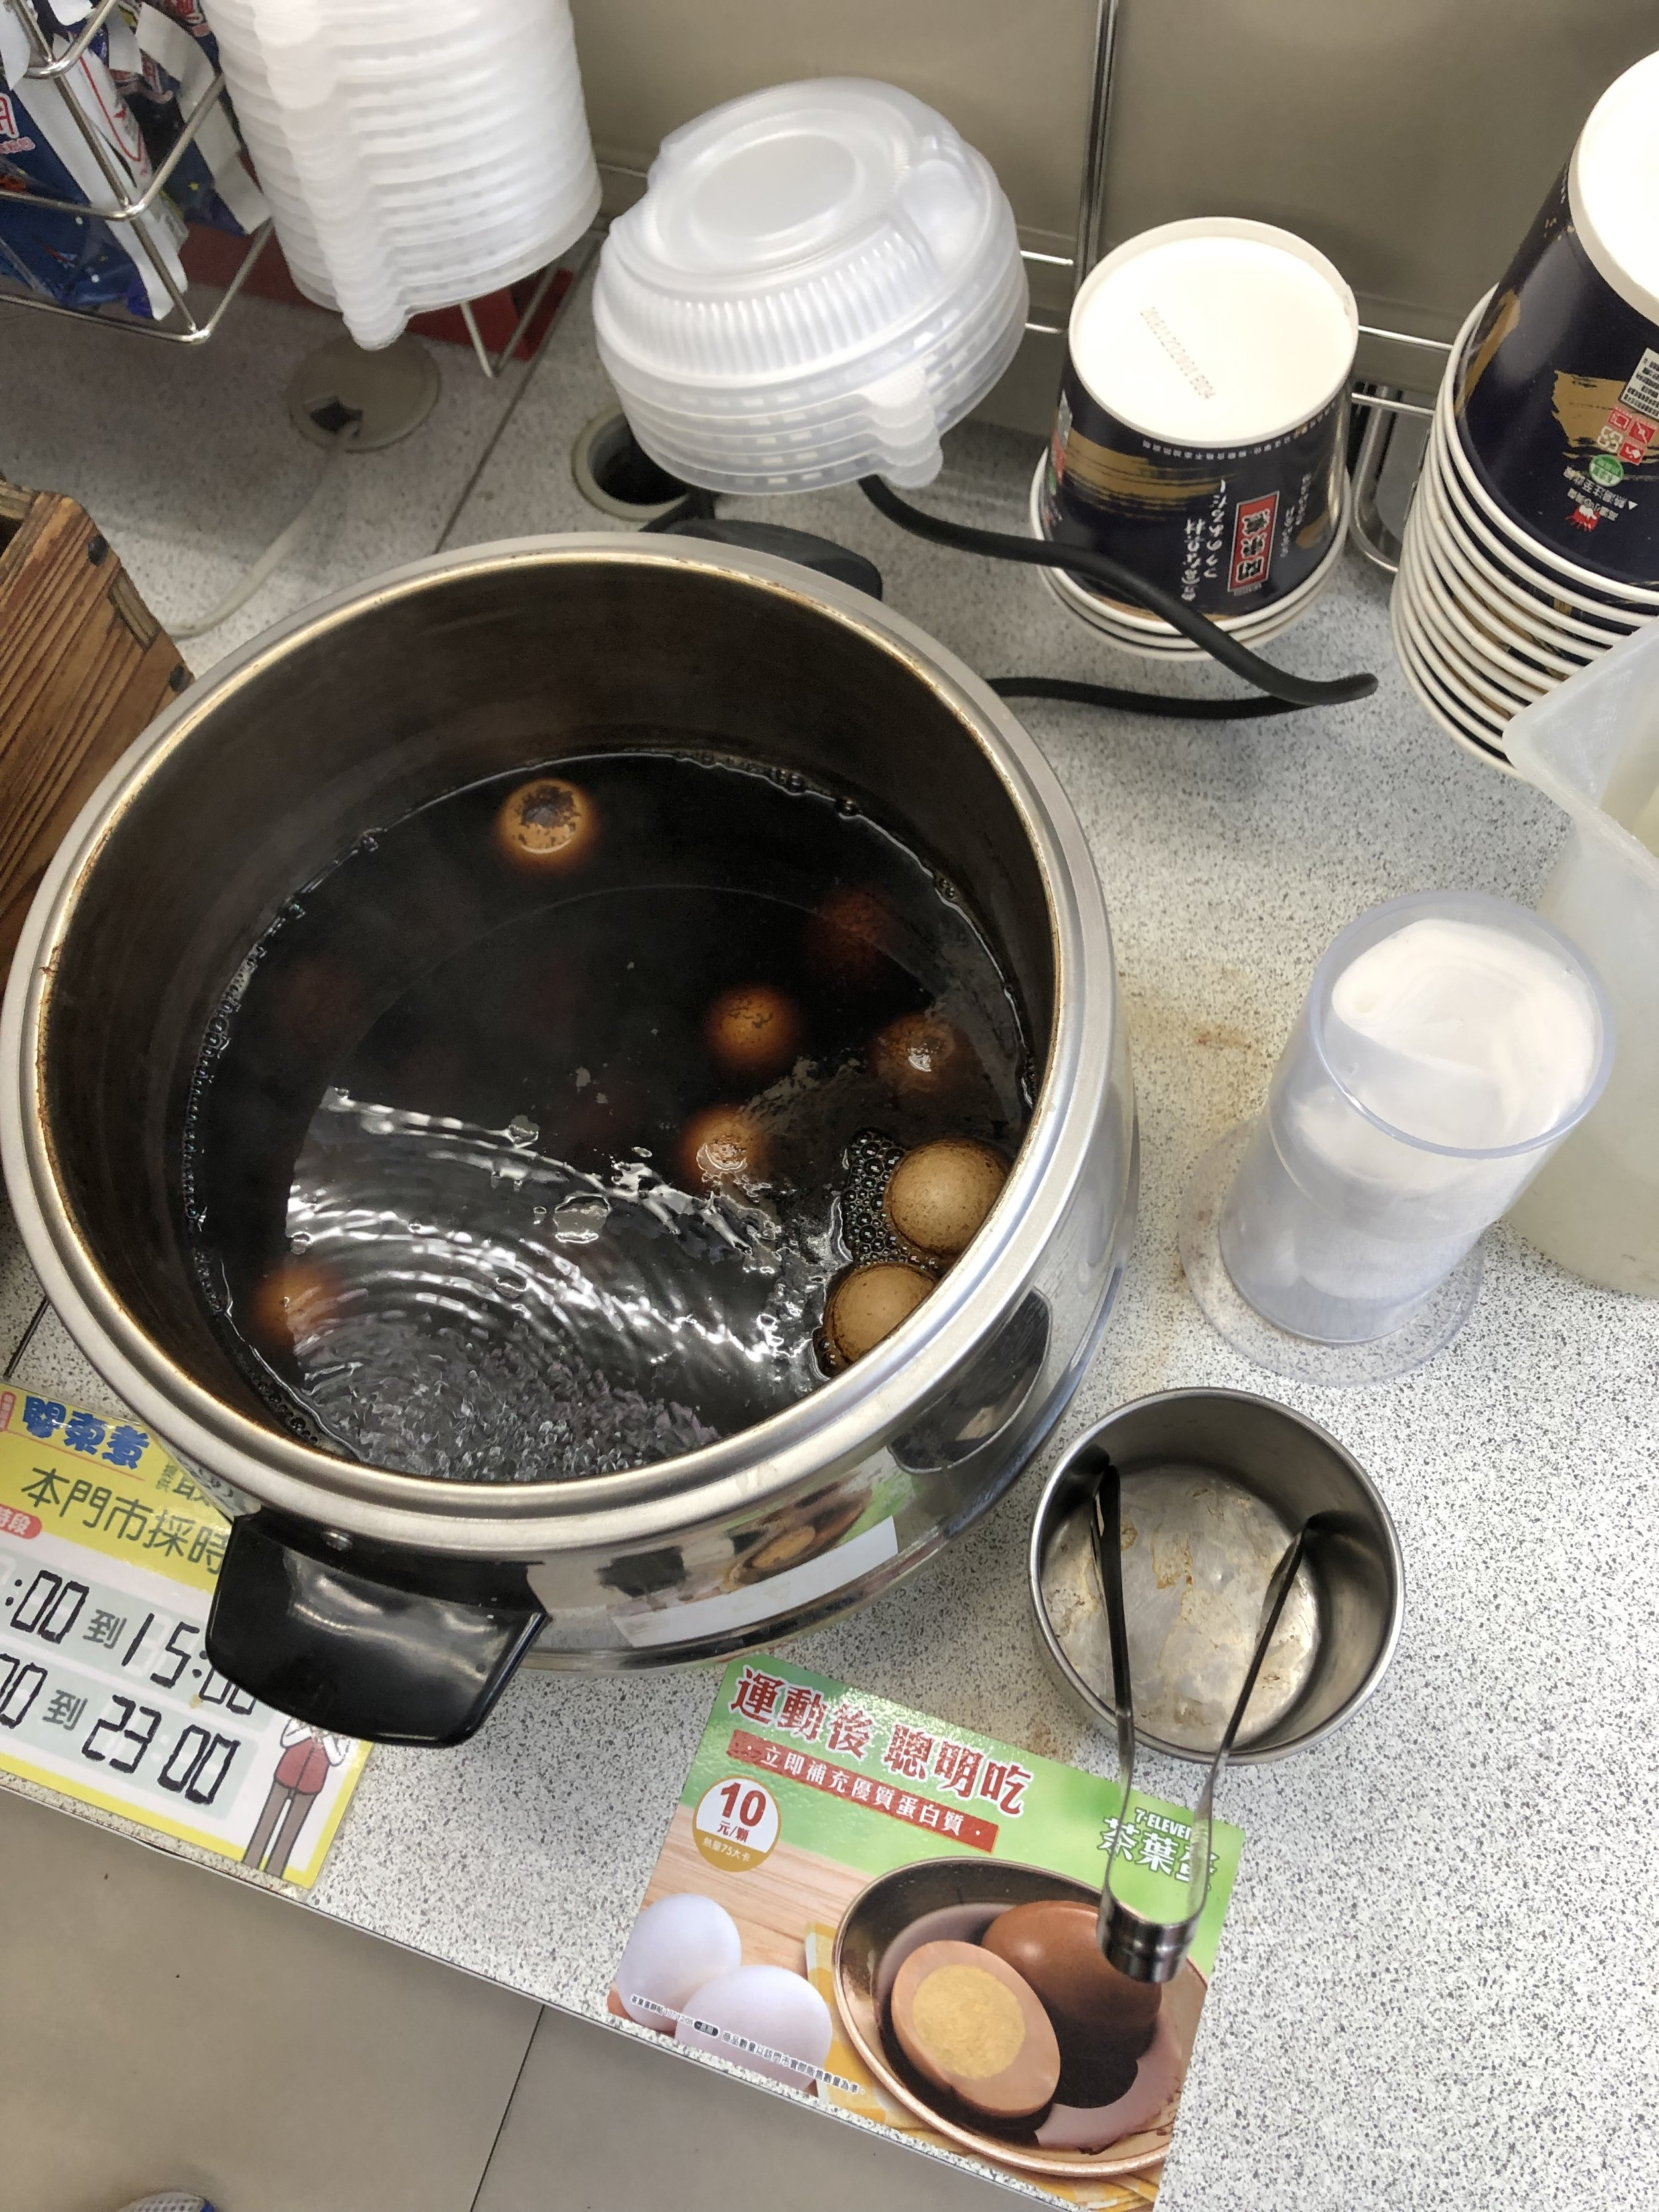 Tea eggs in the 7-11